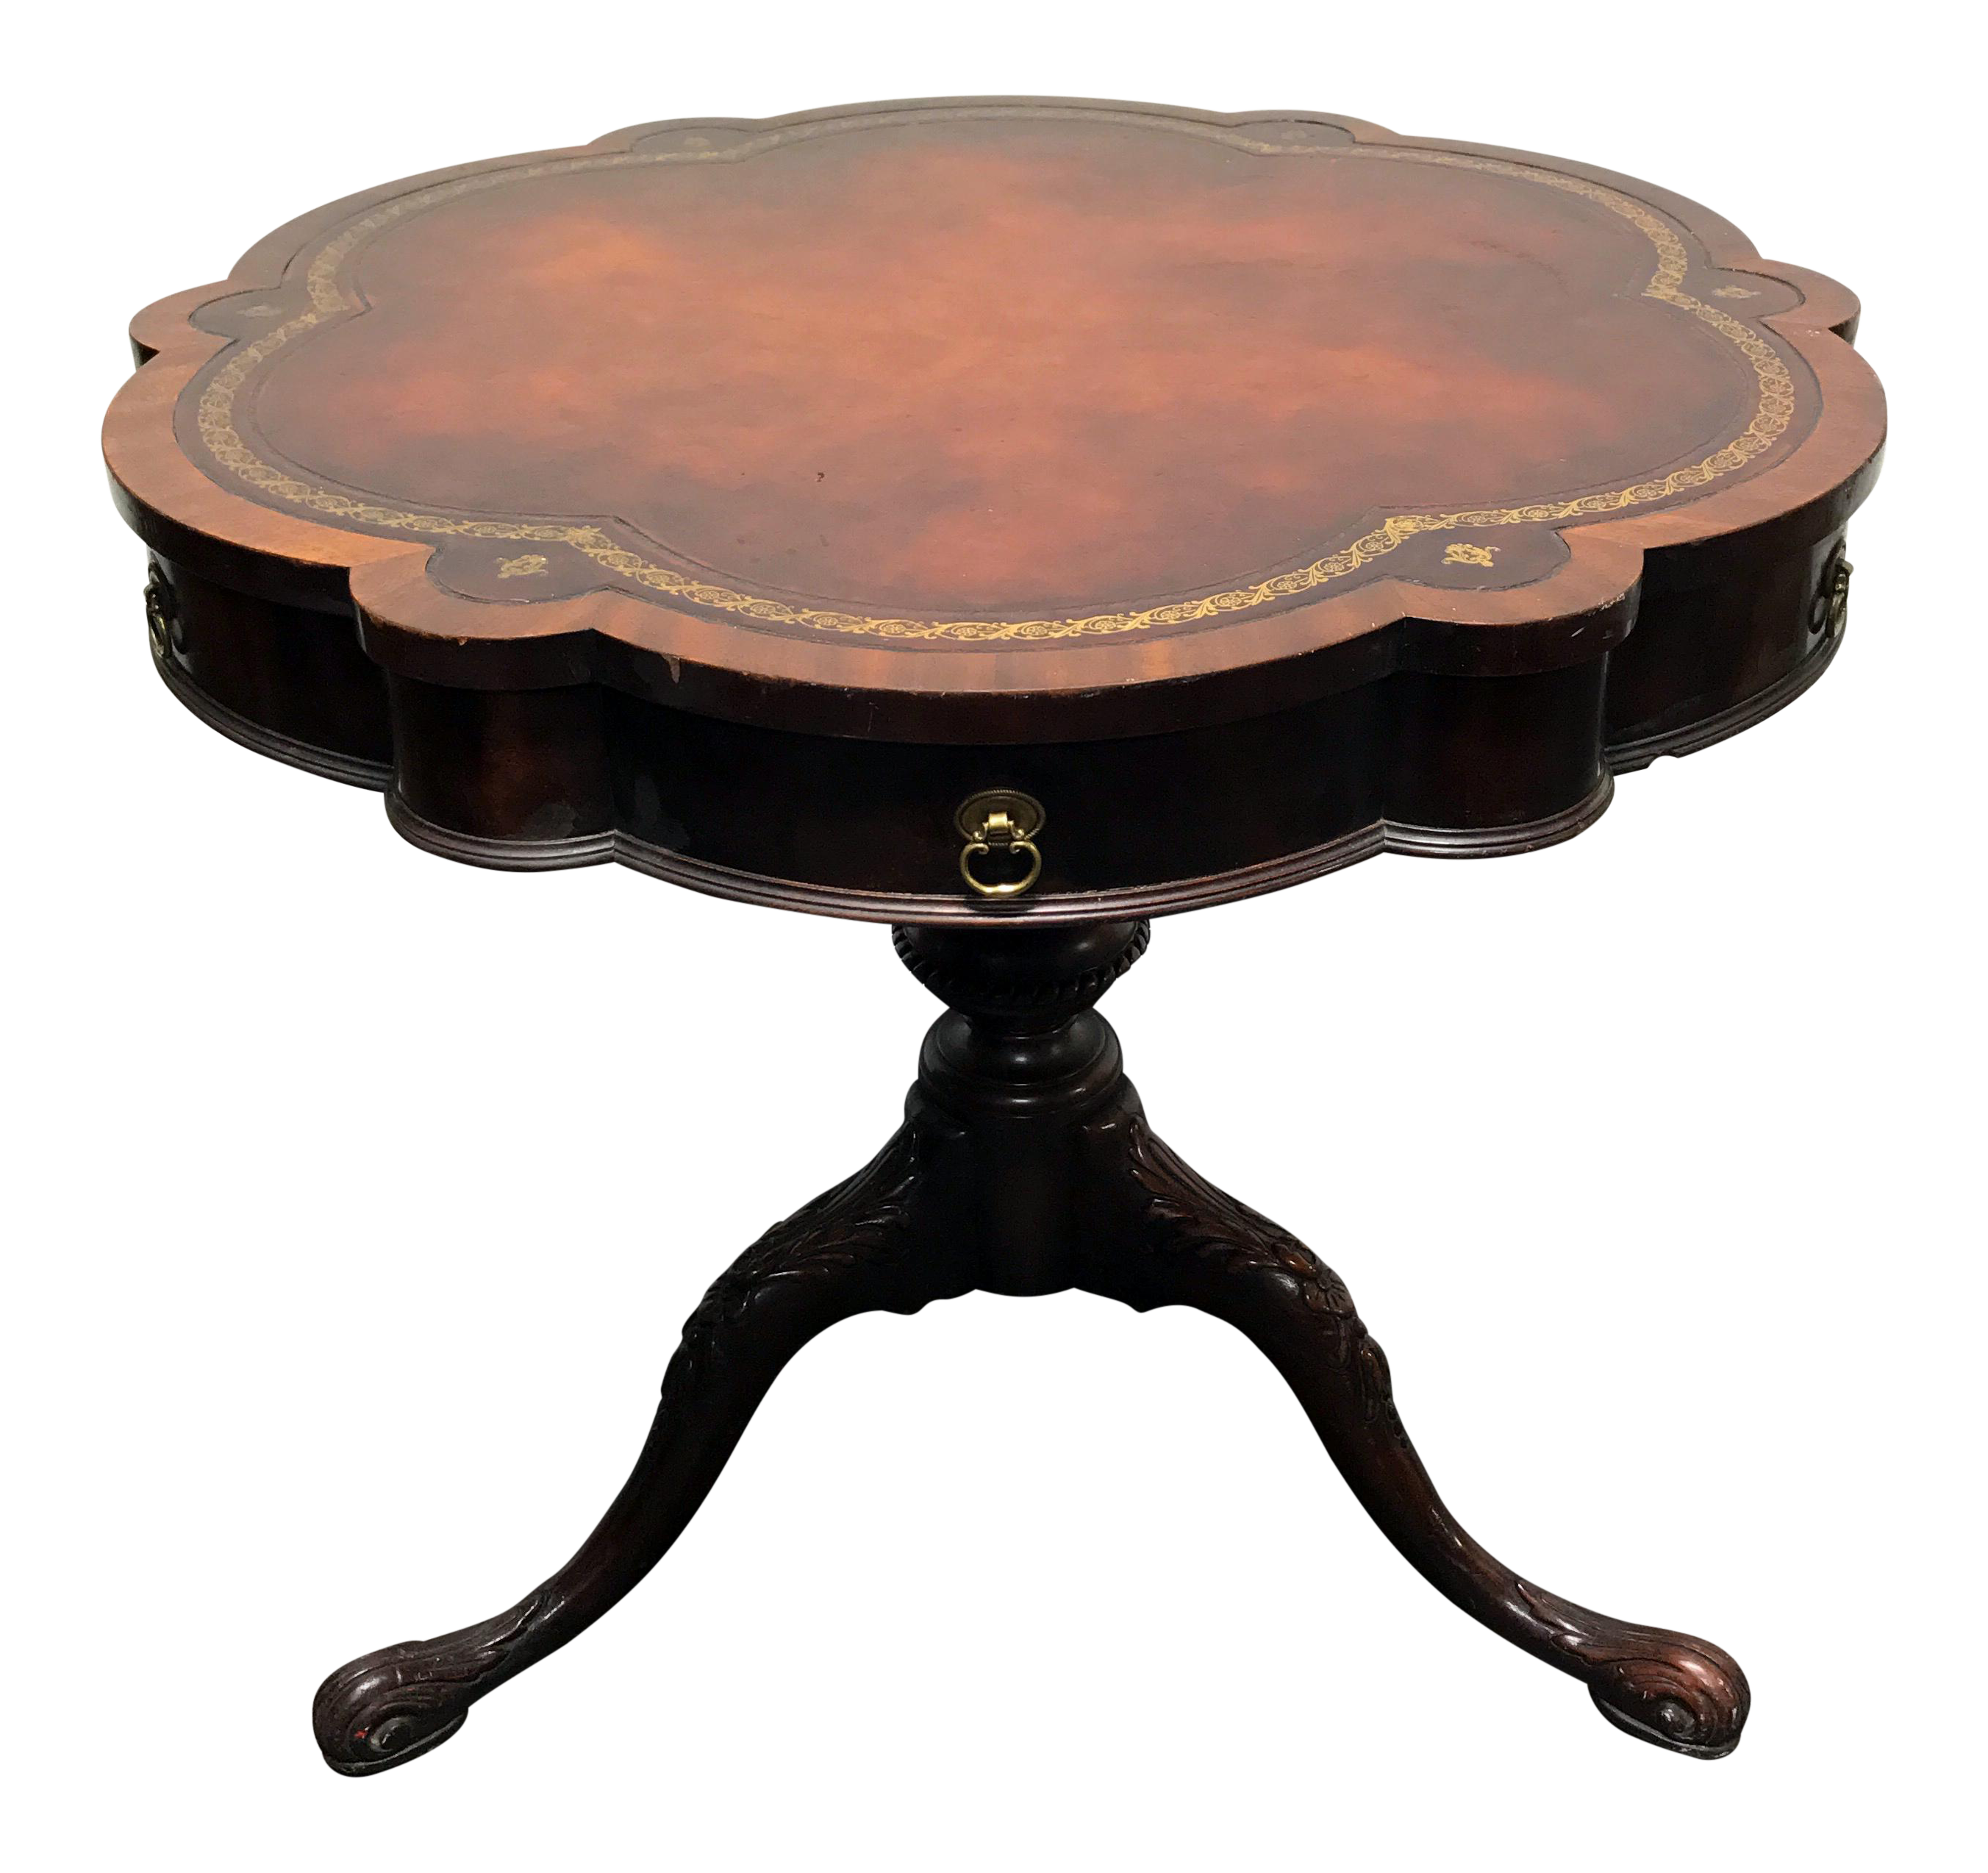 Vintage Weiman Scalloped Pedestal Leather Top Drum Table